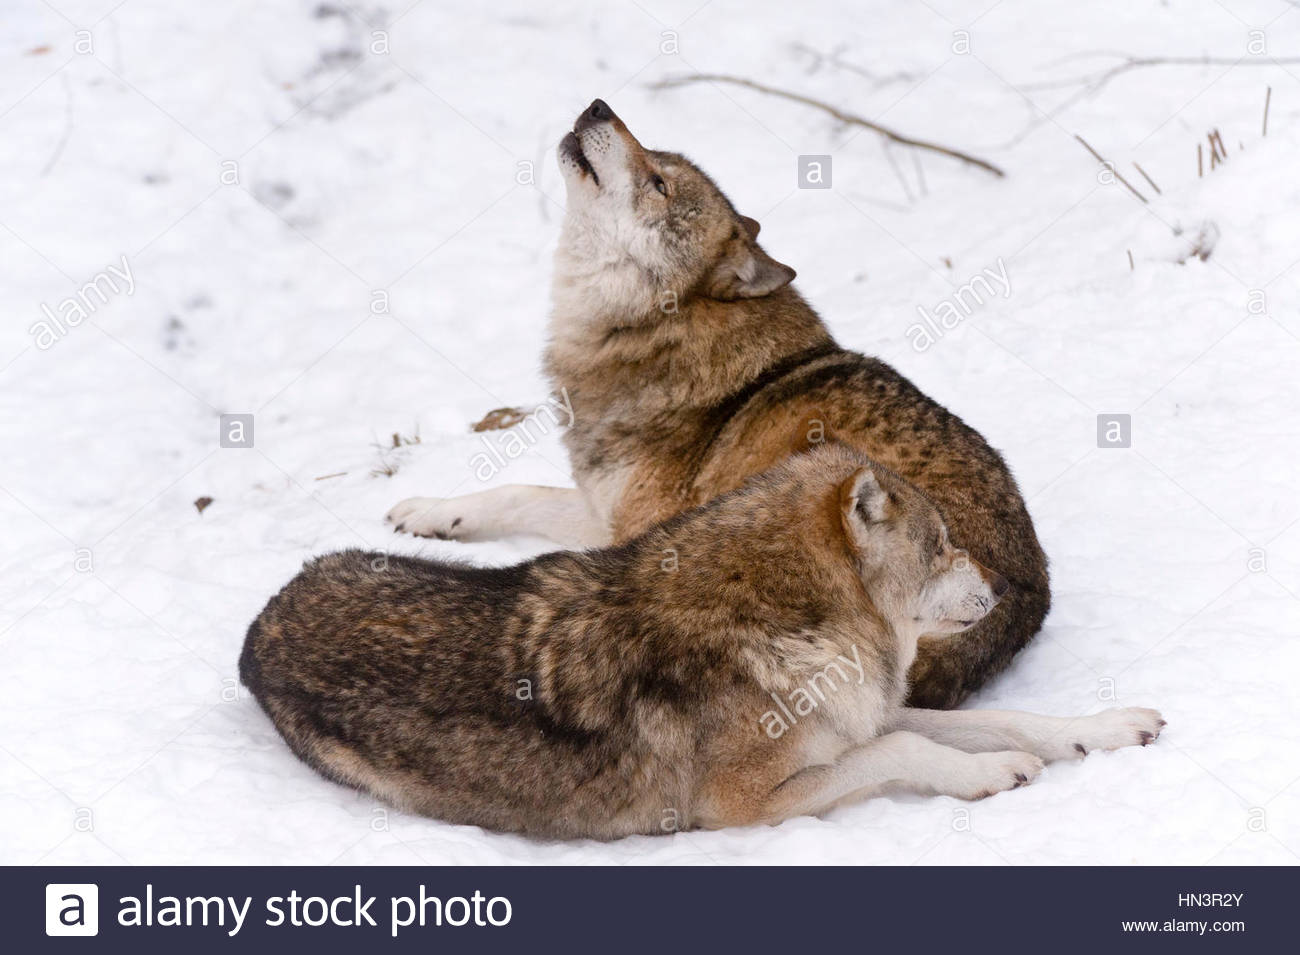 Two Gray wolves, Canis lupus, howling in Bavarian Forest National Park. - Stock Image